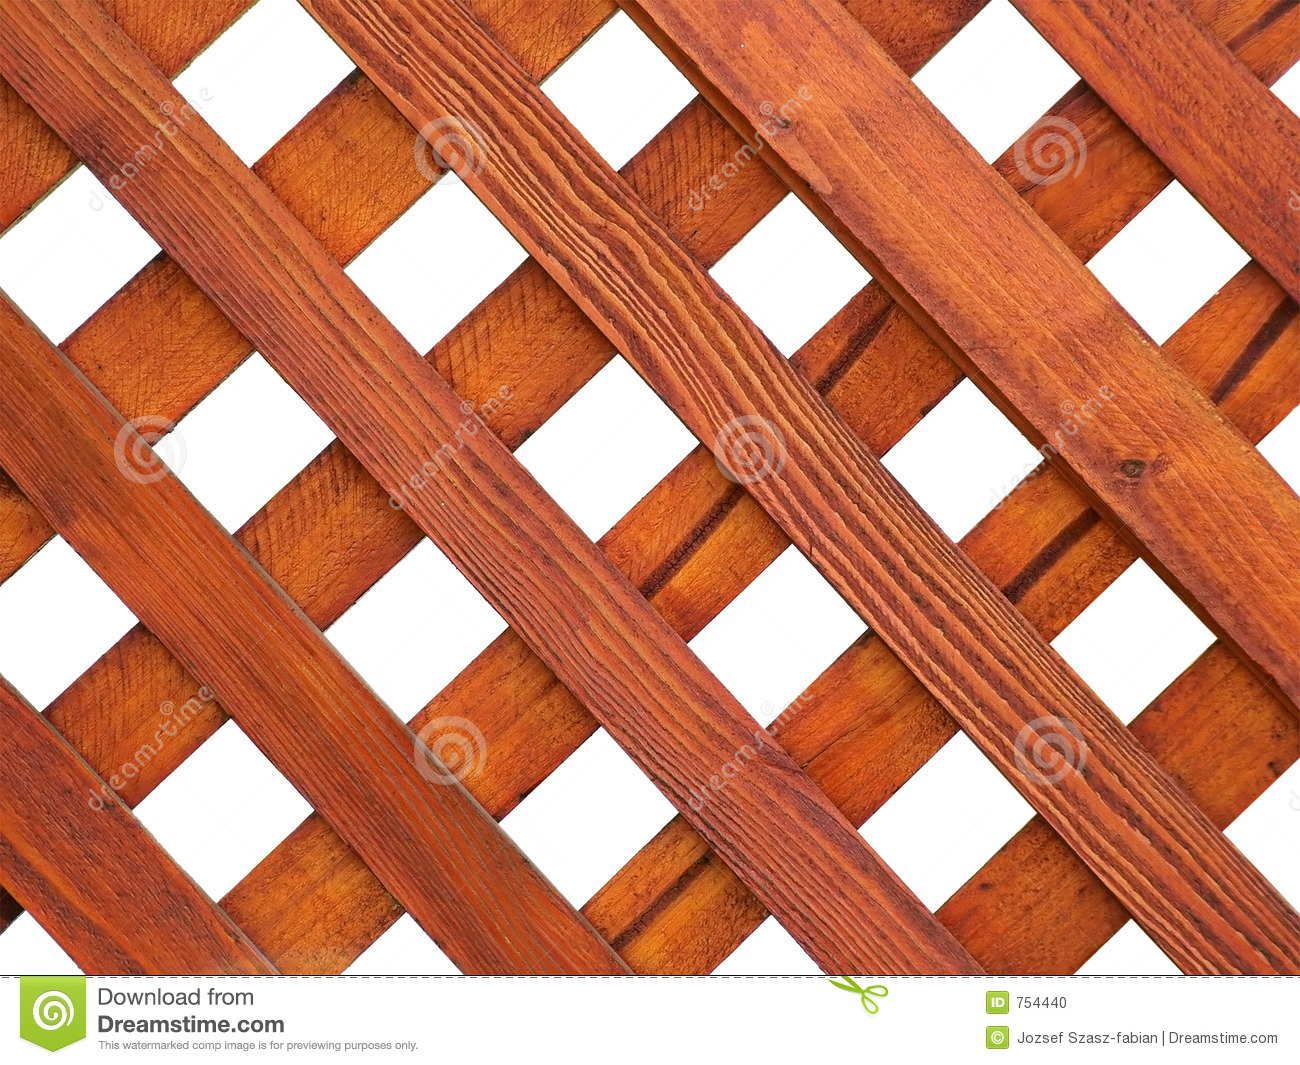 Wooden Grid Stock Photo - Image: 754440